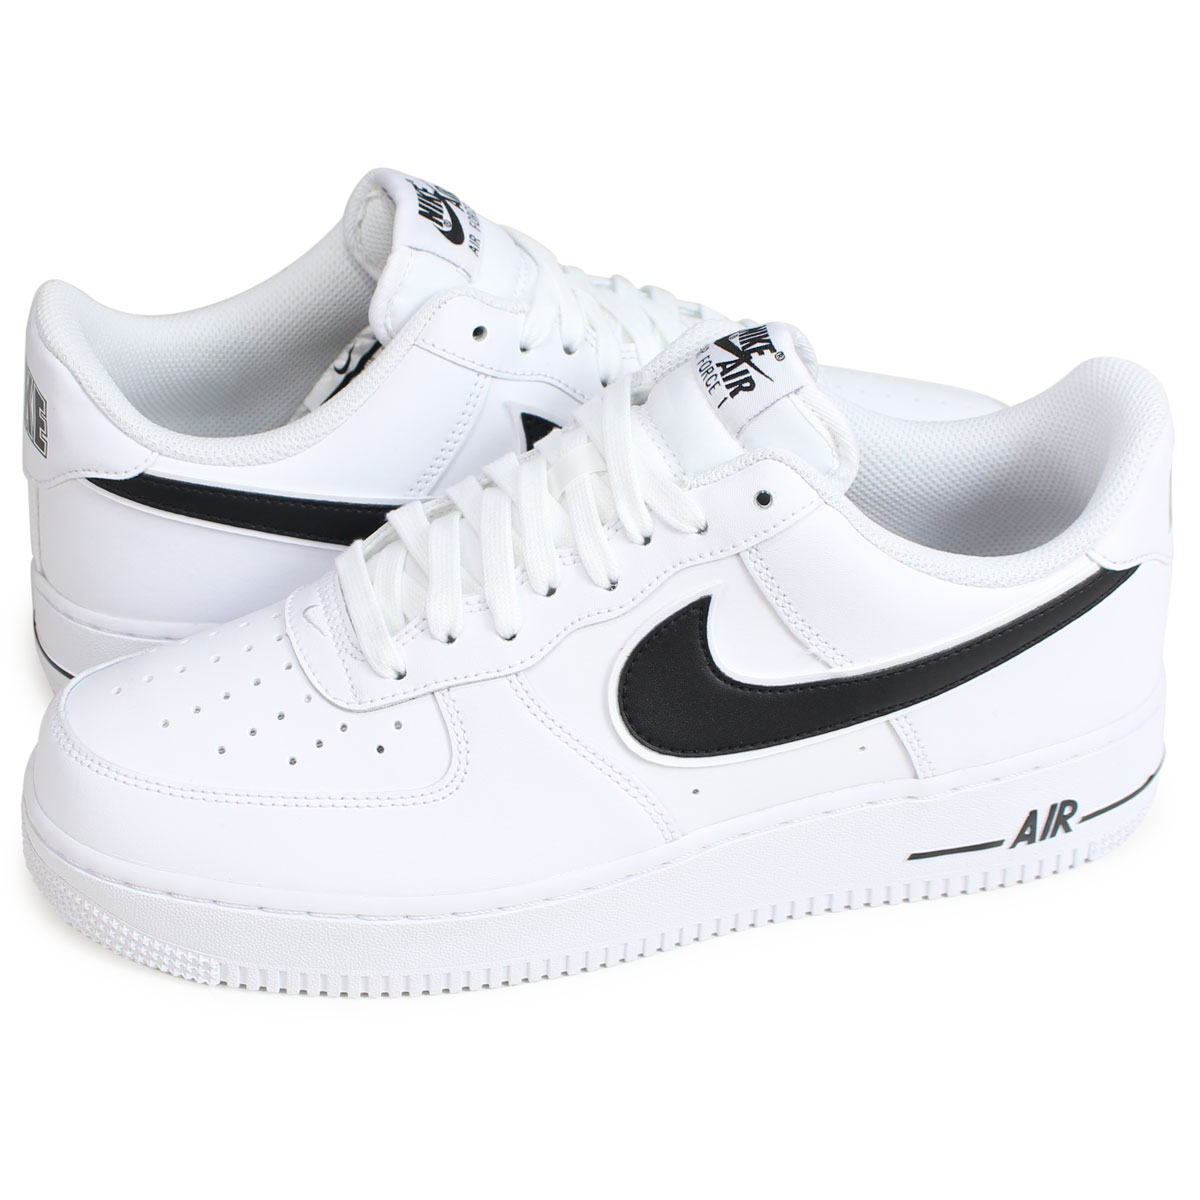 Nike NIKE air force 1 men's sneakers AIR FORCE 1 07 3 white white AO2423 101 [194]